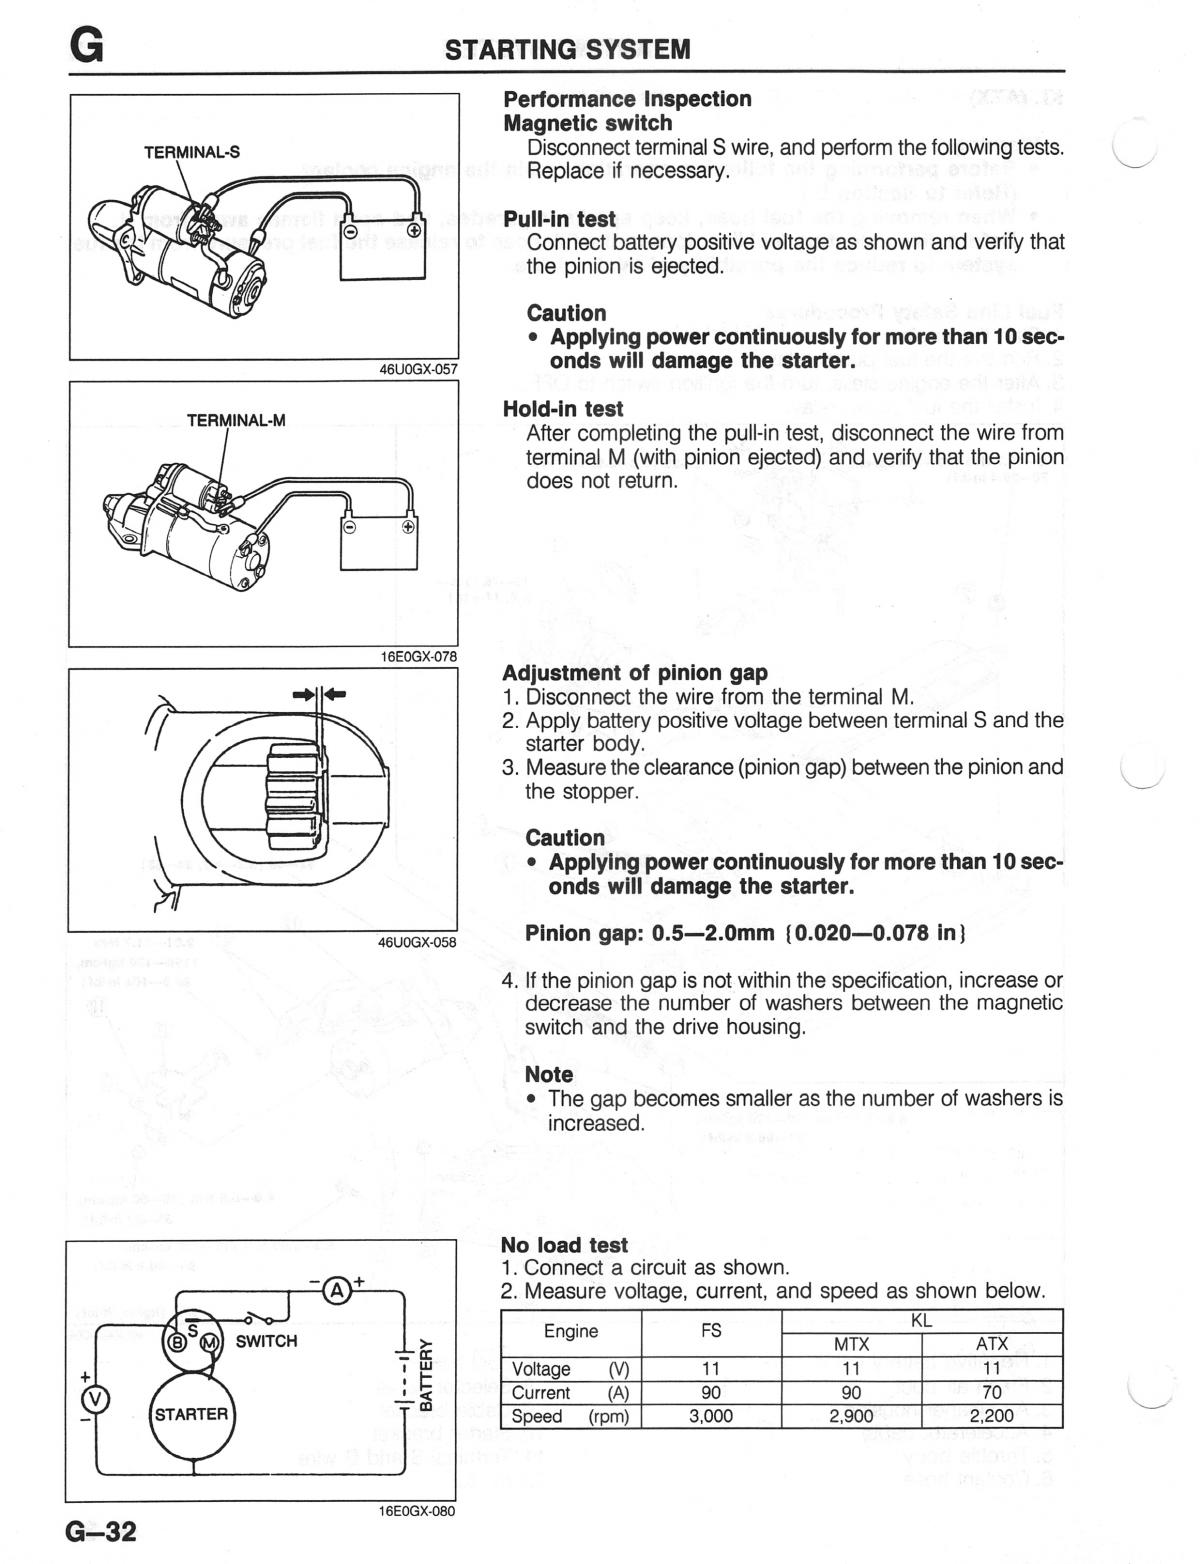 hight resolution of 1996 626 ignition switch wiring 1993 2002 2l i4 mazda626 net rh mazda626 net mazda 626 parts catalog mazda 626 radio wiring diagram